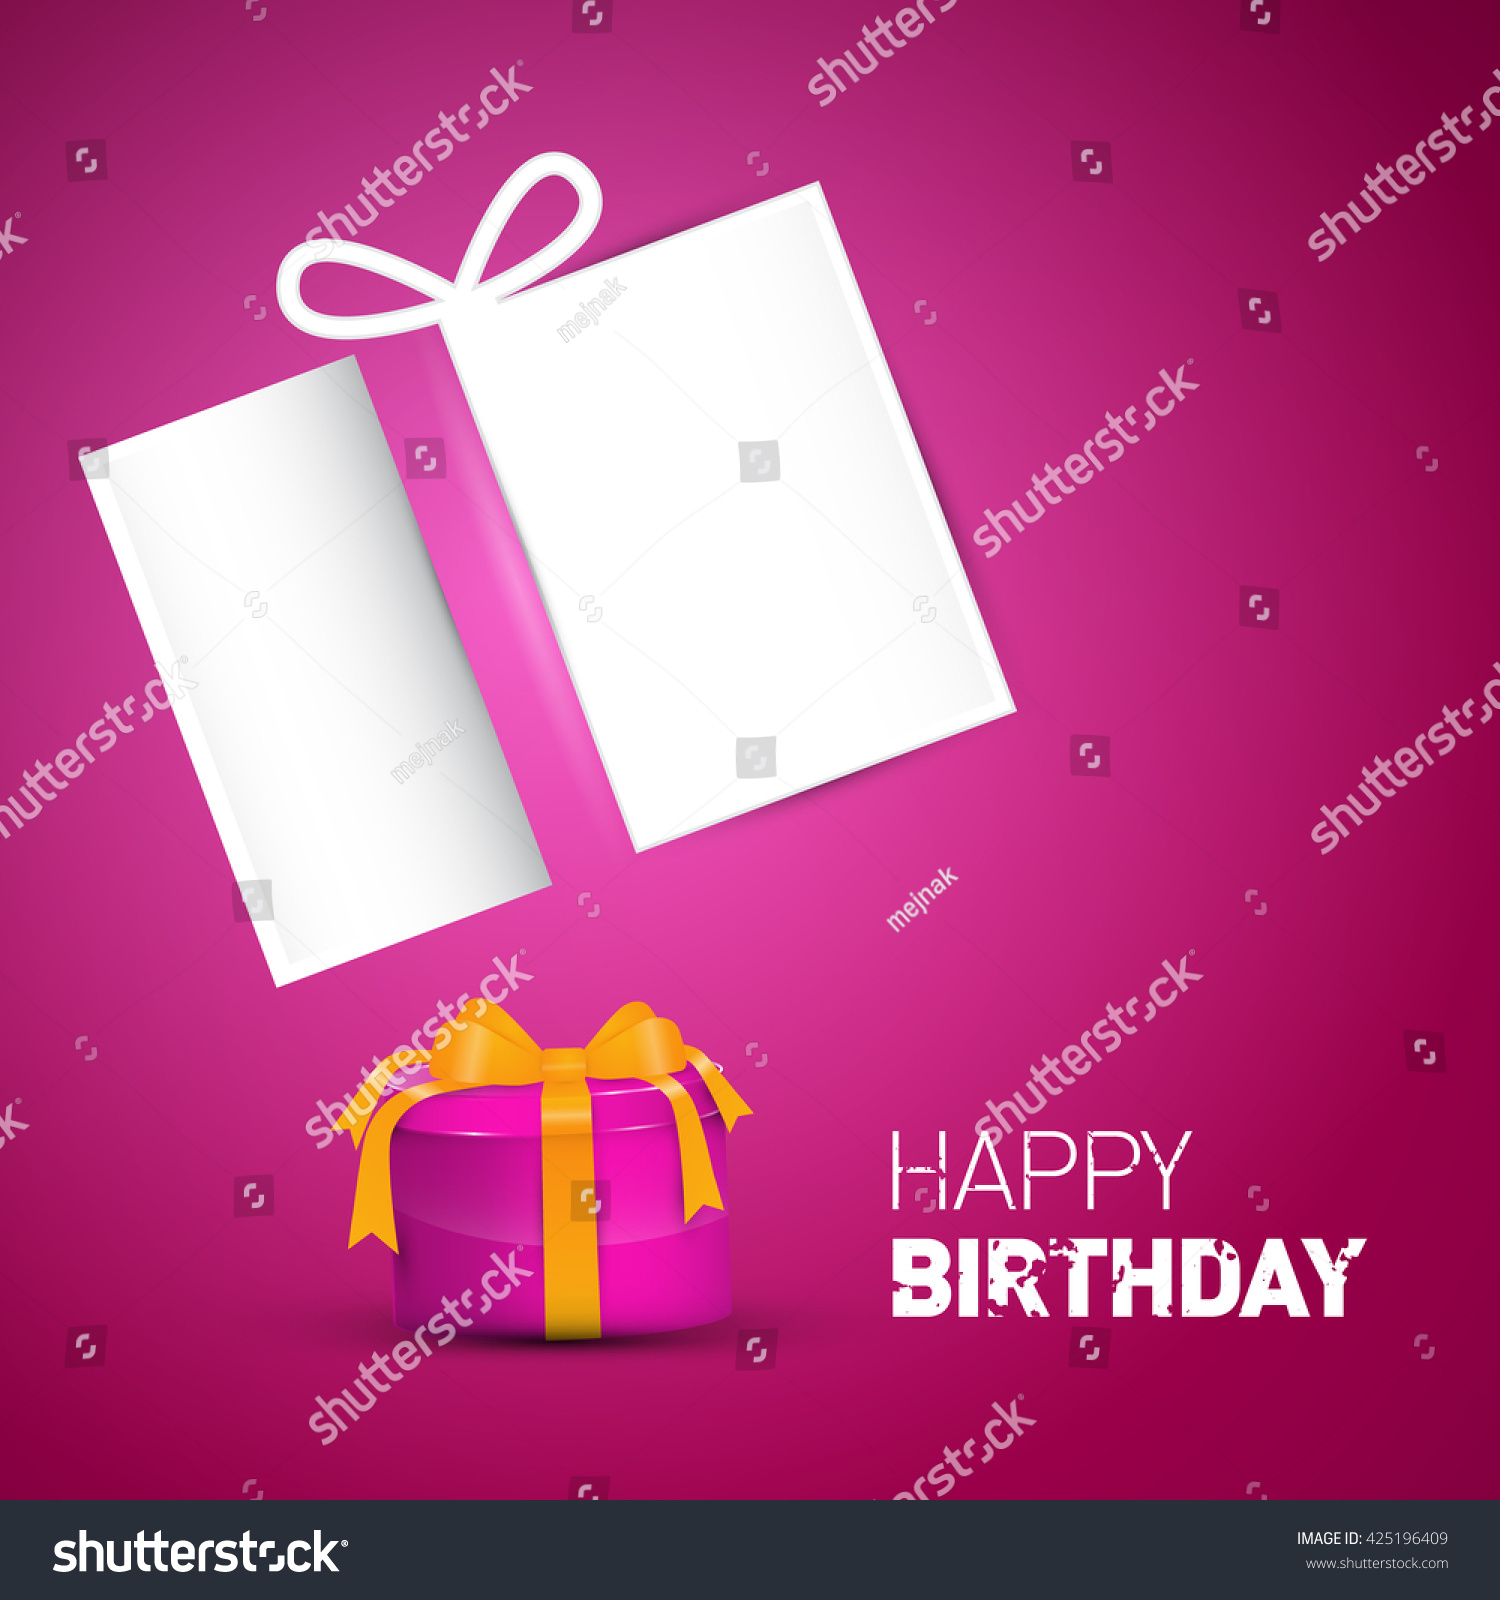 Happy birthday card pink vector birthday stock vector 425196409 happy birthday card pink vector birthday background with gift box and empty paper bookmarktalkfo Choice Image